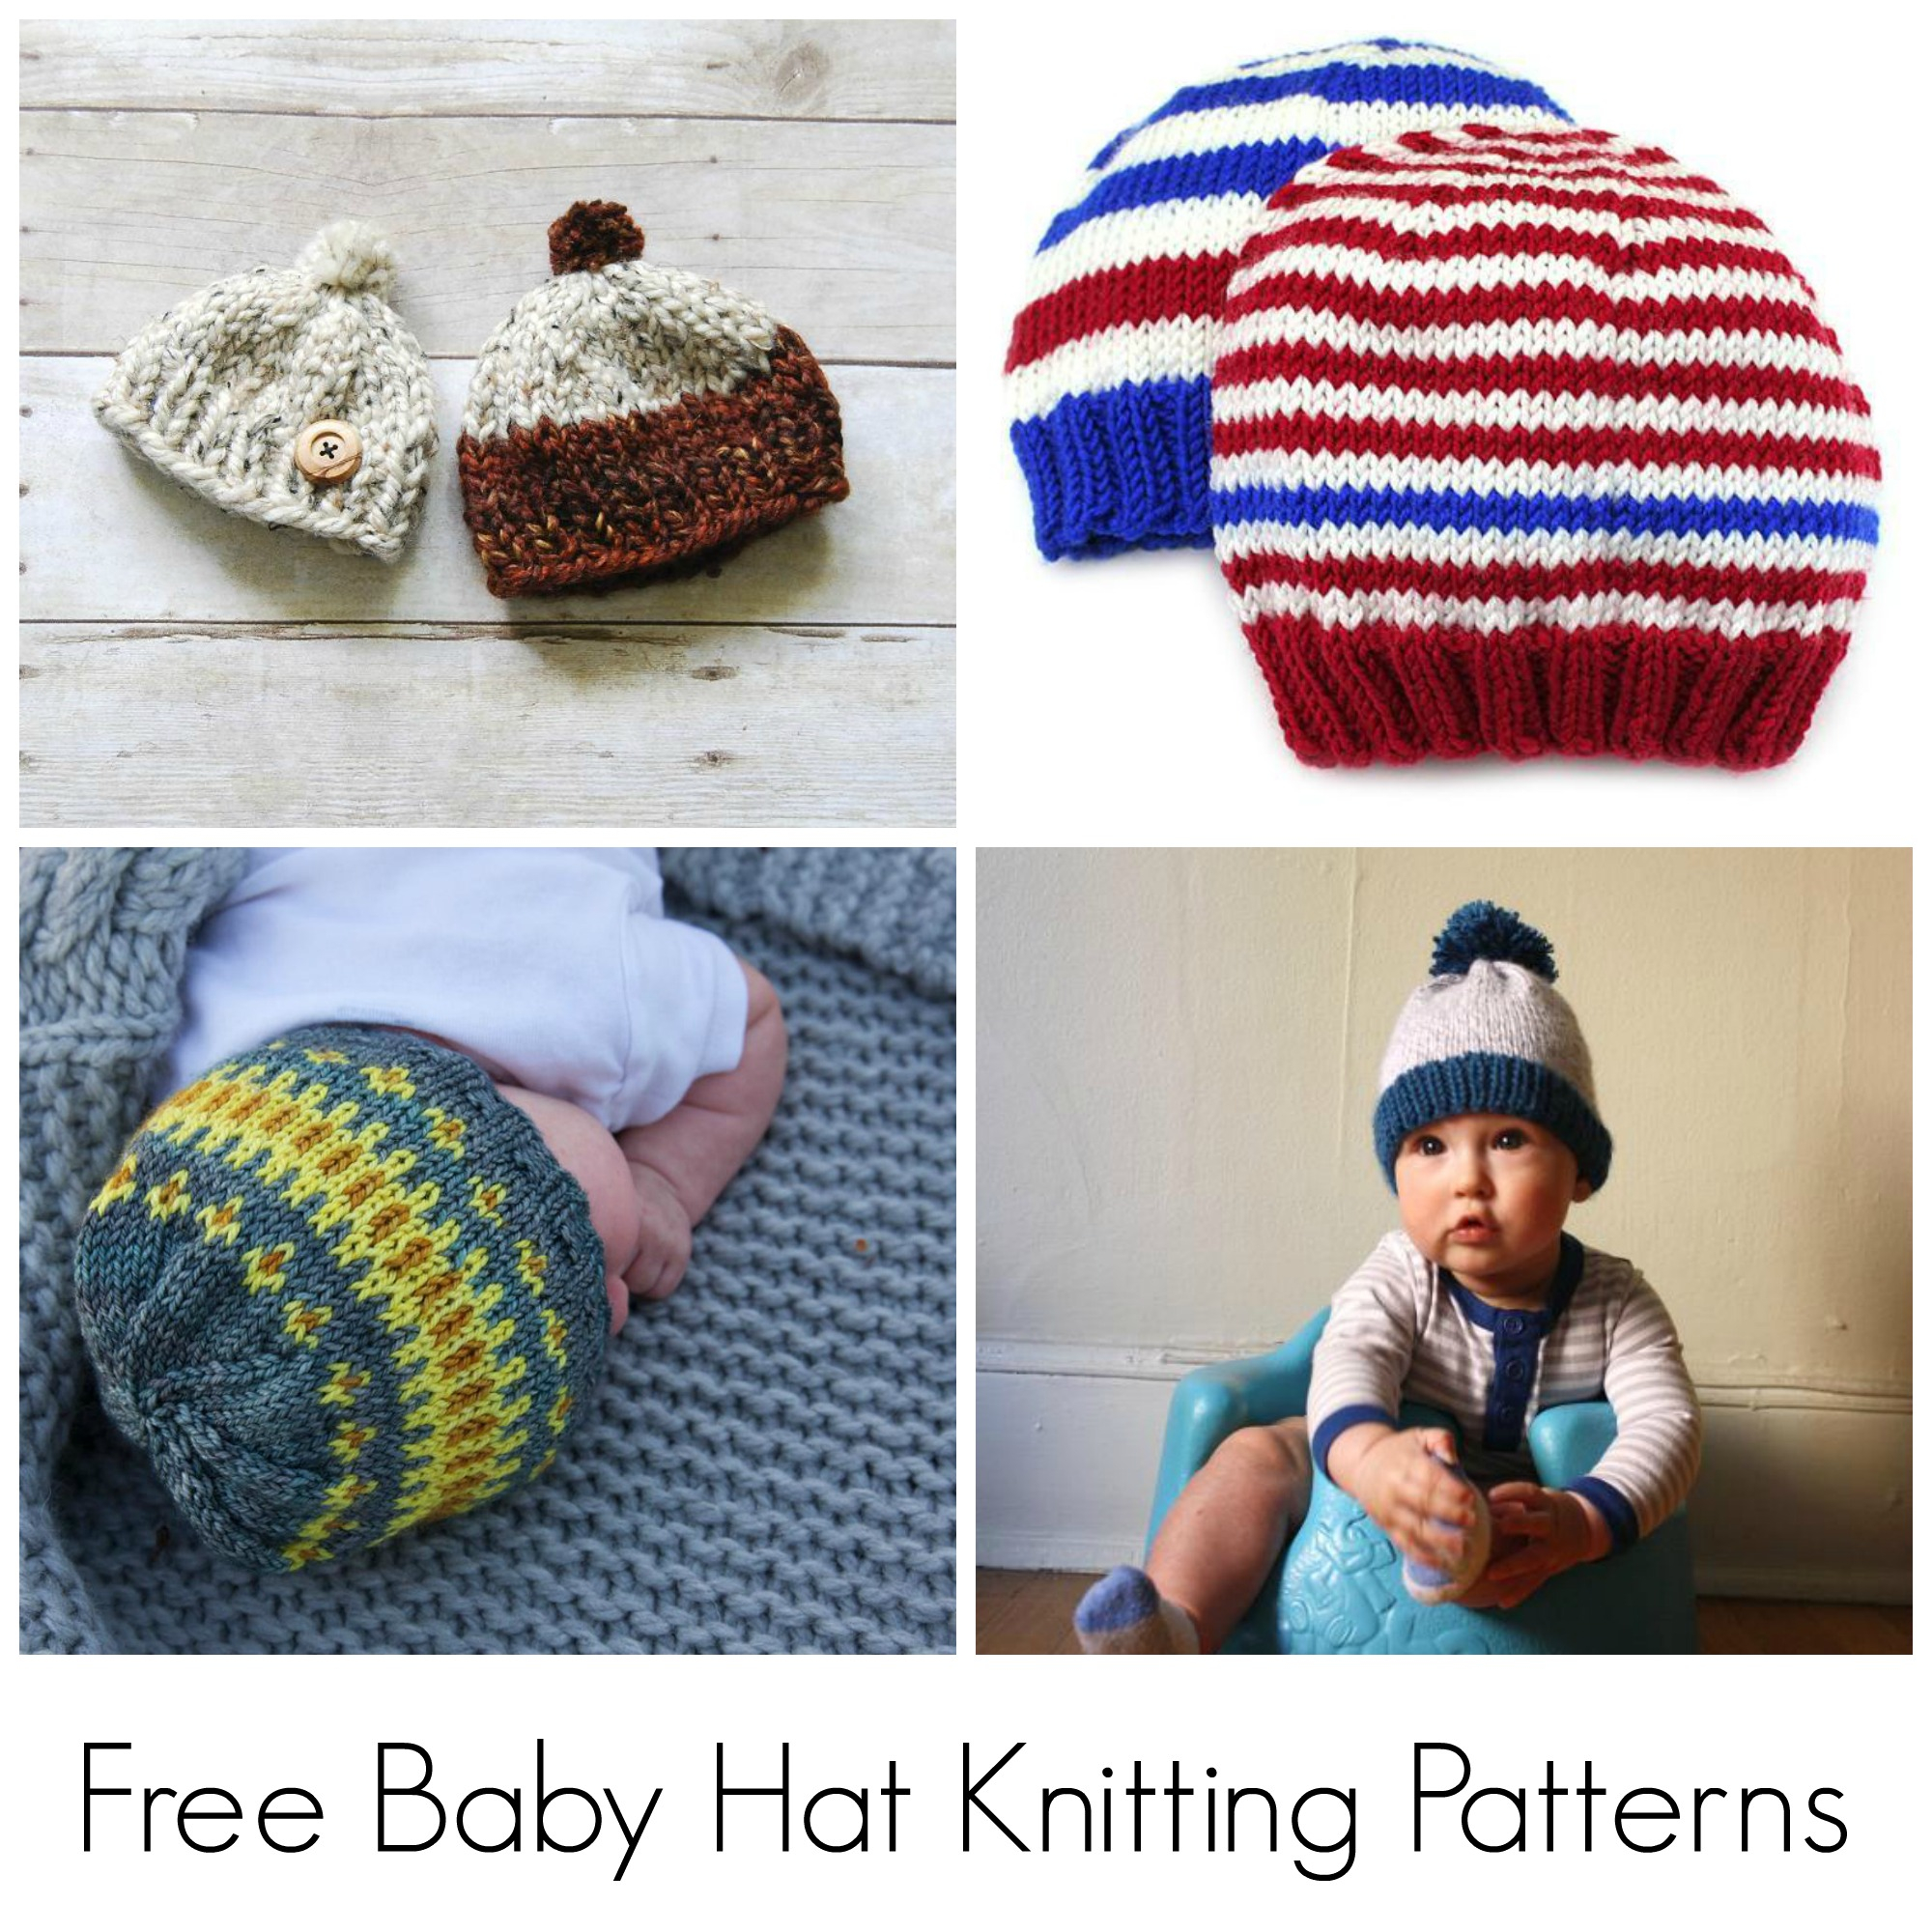 Free Baby Knitting Patterns Pinterest Pinterest Free Ba Hat Knitting Patterns